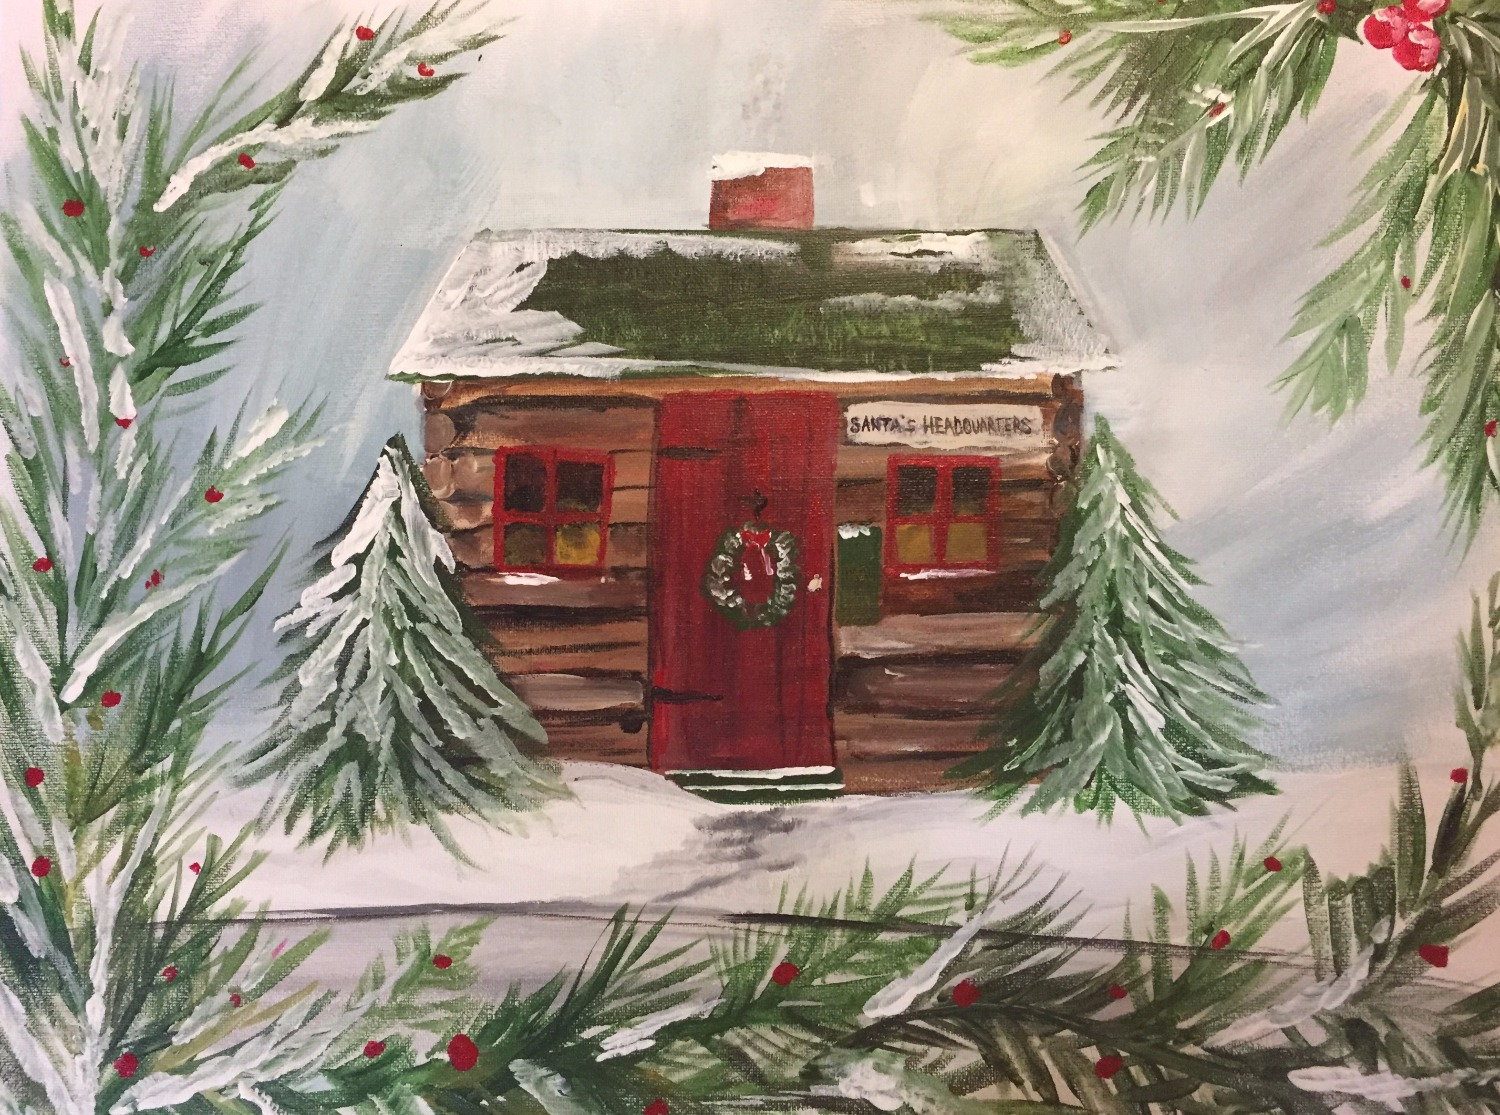 Santa's Cabin on the Square